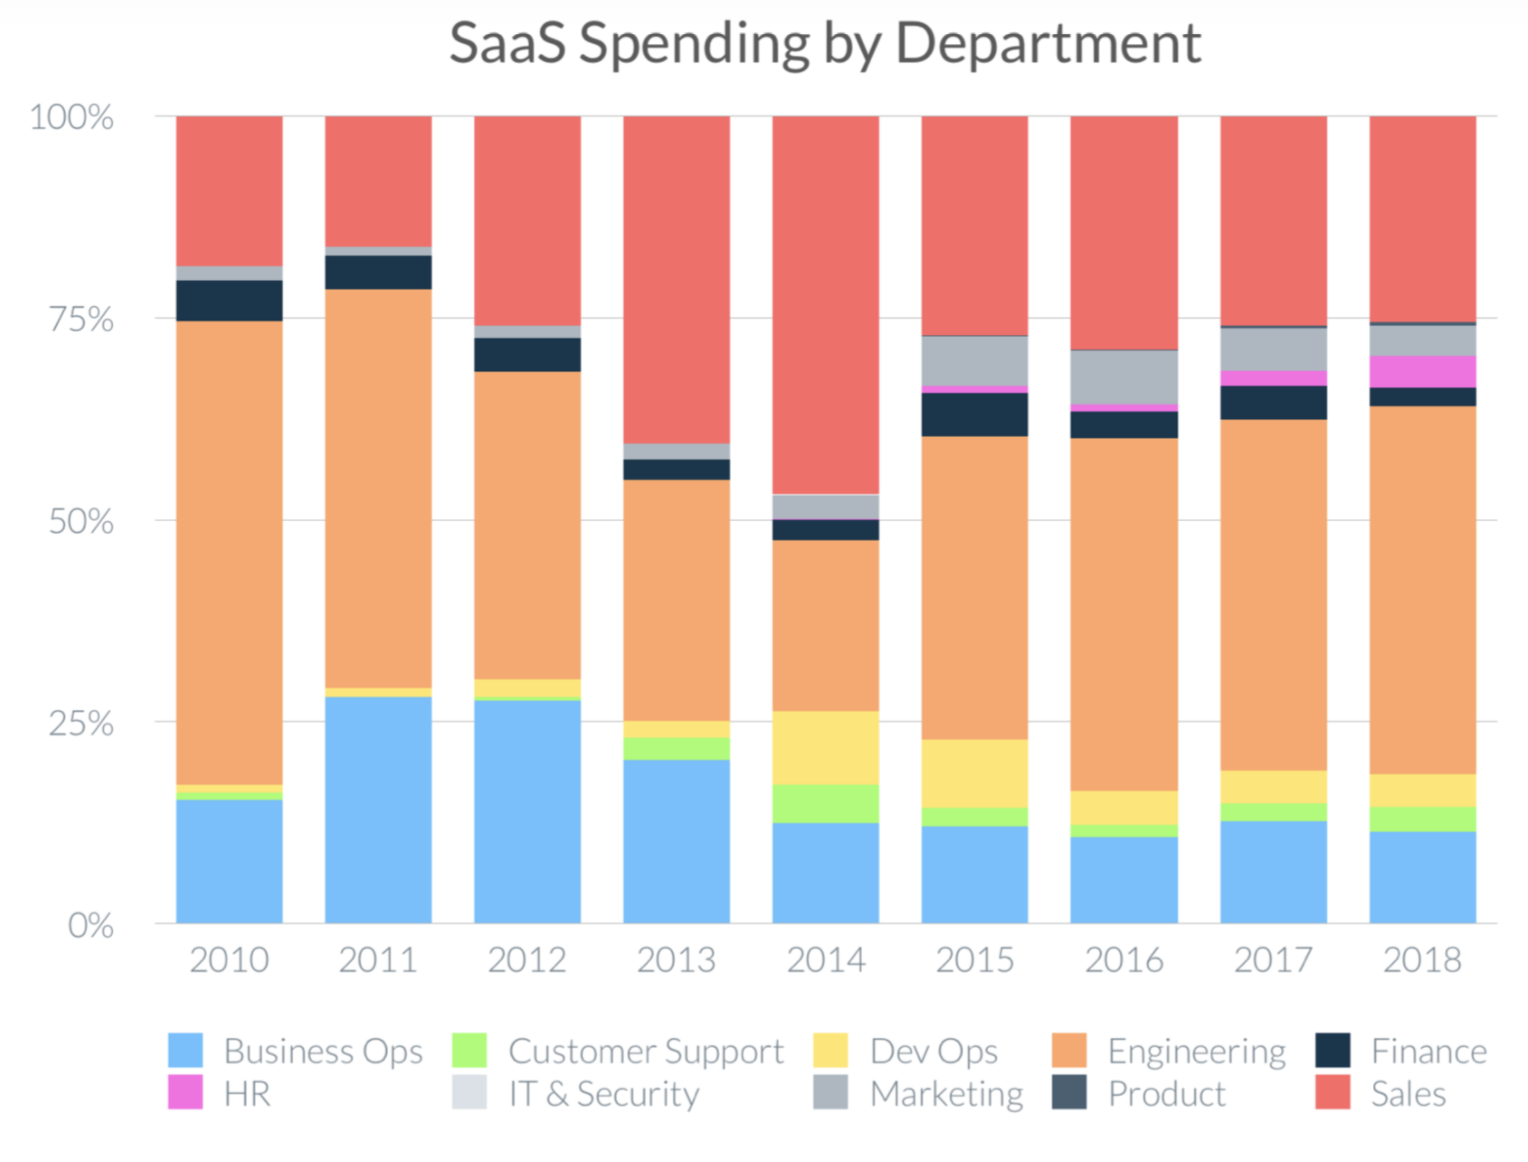 Saas Spending by Department bar graph by percentage over the years 2010 through 2018